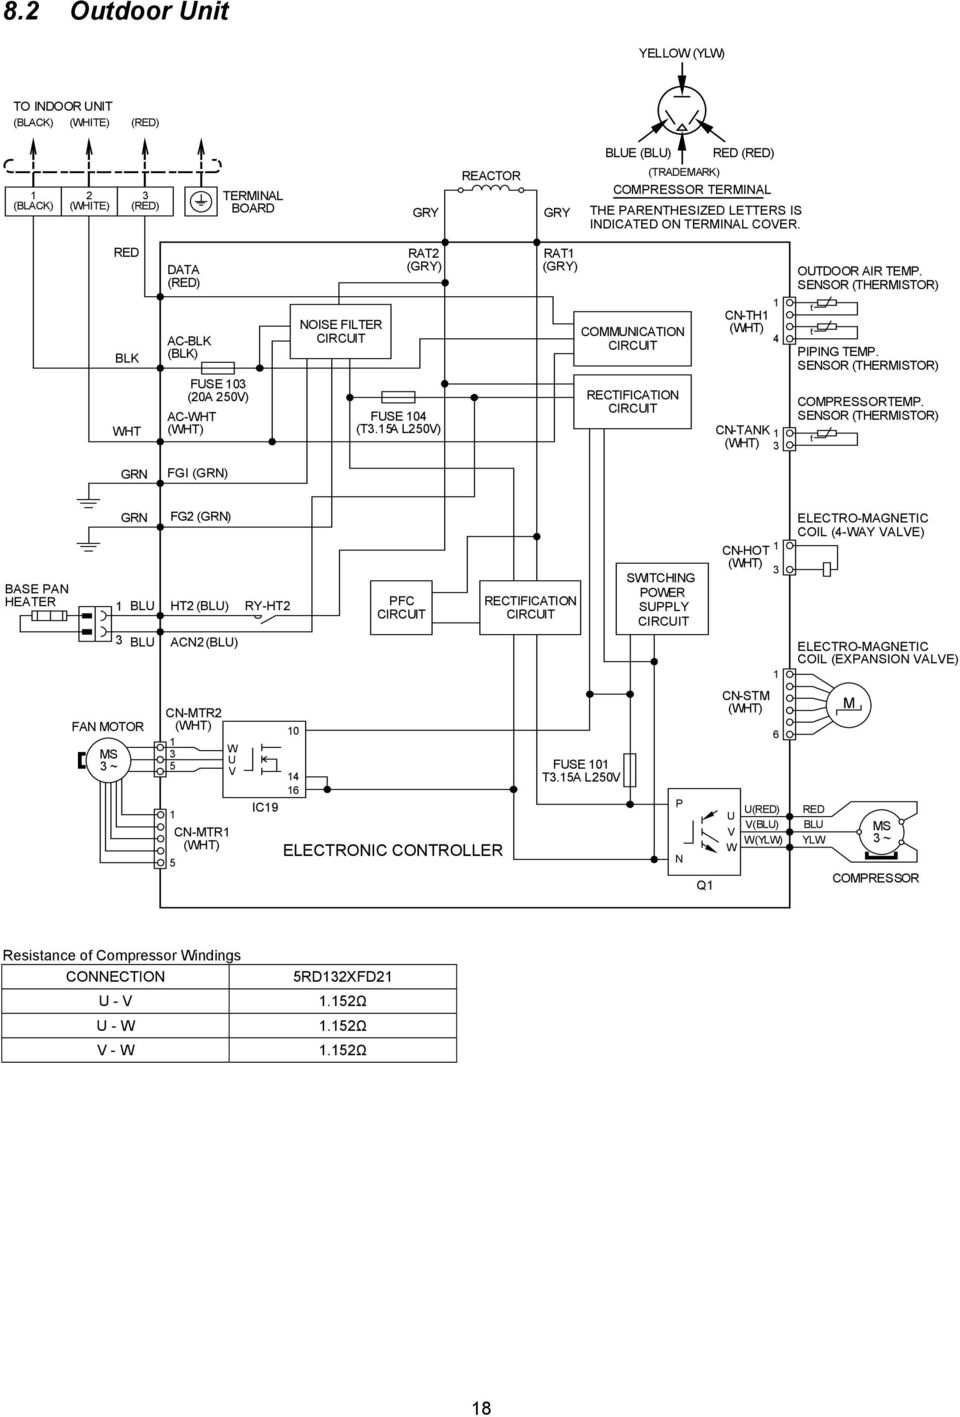 Honeywell Ra832a Wiring Diagram